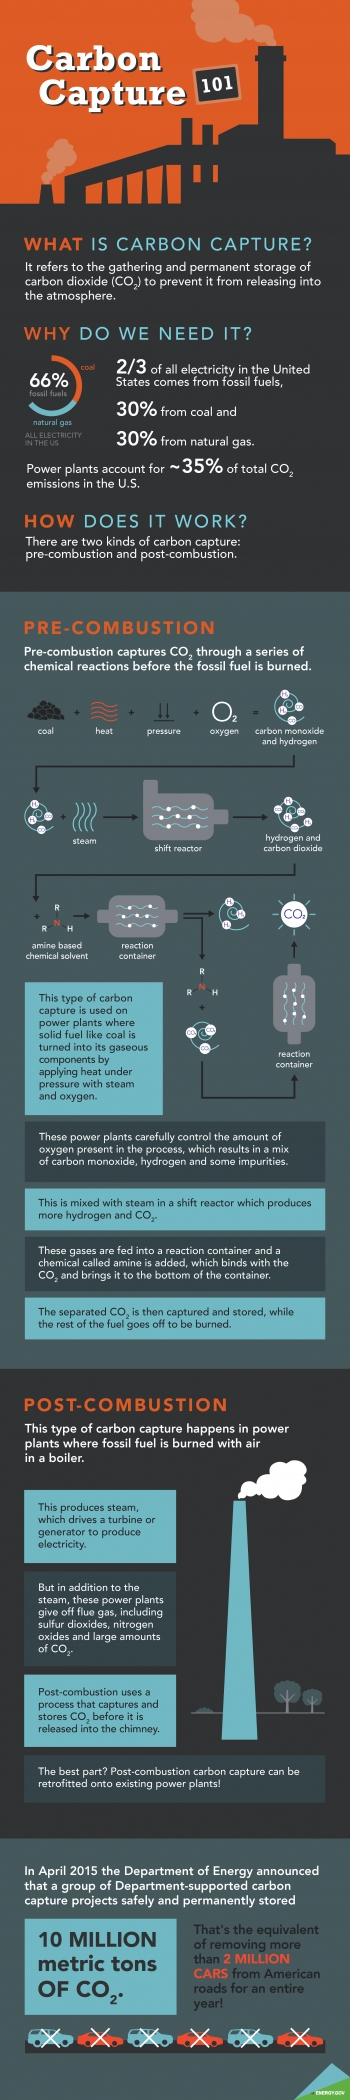 "Carbon capture is an important part of the Energy Department's Fossil Energy research and development efforts, but it can be hard to understand. This infographic breaks it down for you. | Infographic by <a href=""/node/1332956"">Carly Wilkins</a>, Energy Department."